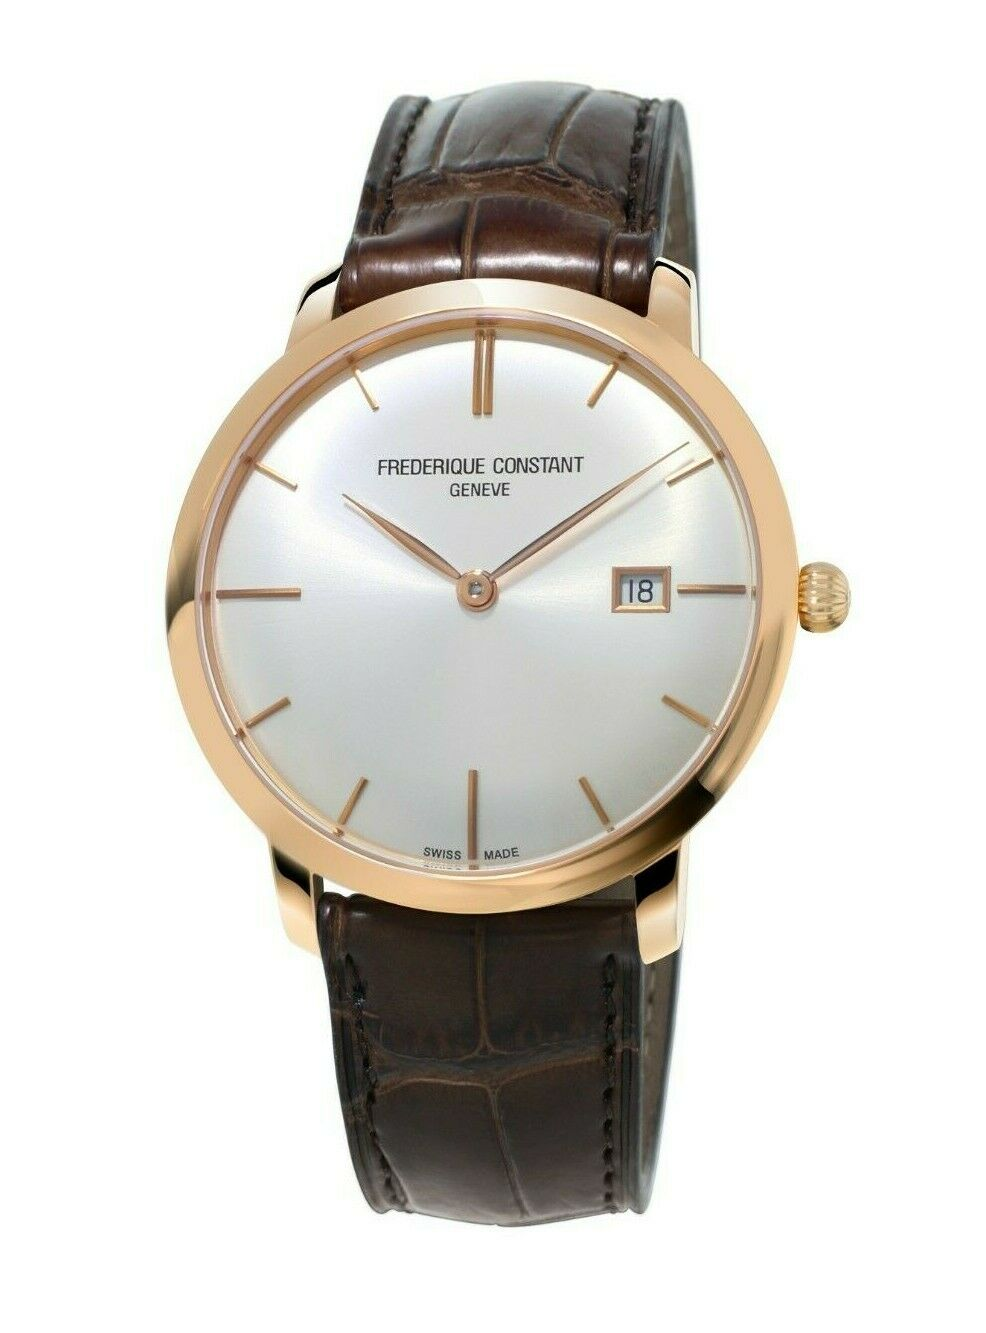 Frederique Constant Slimline Men's Swiss Automatic 40mm Watch FC-306V4S9 - watch picture 1